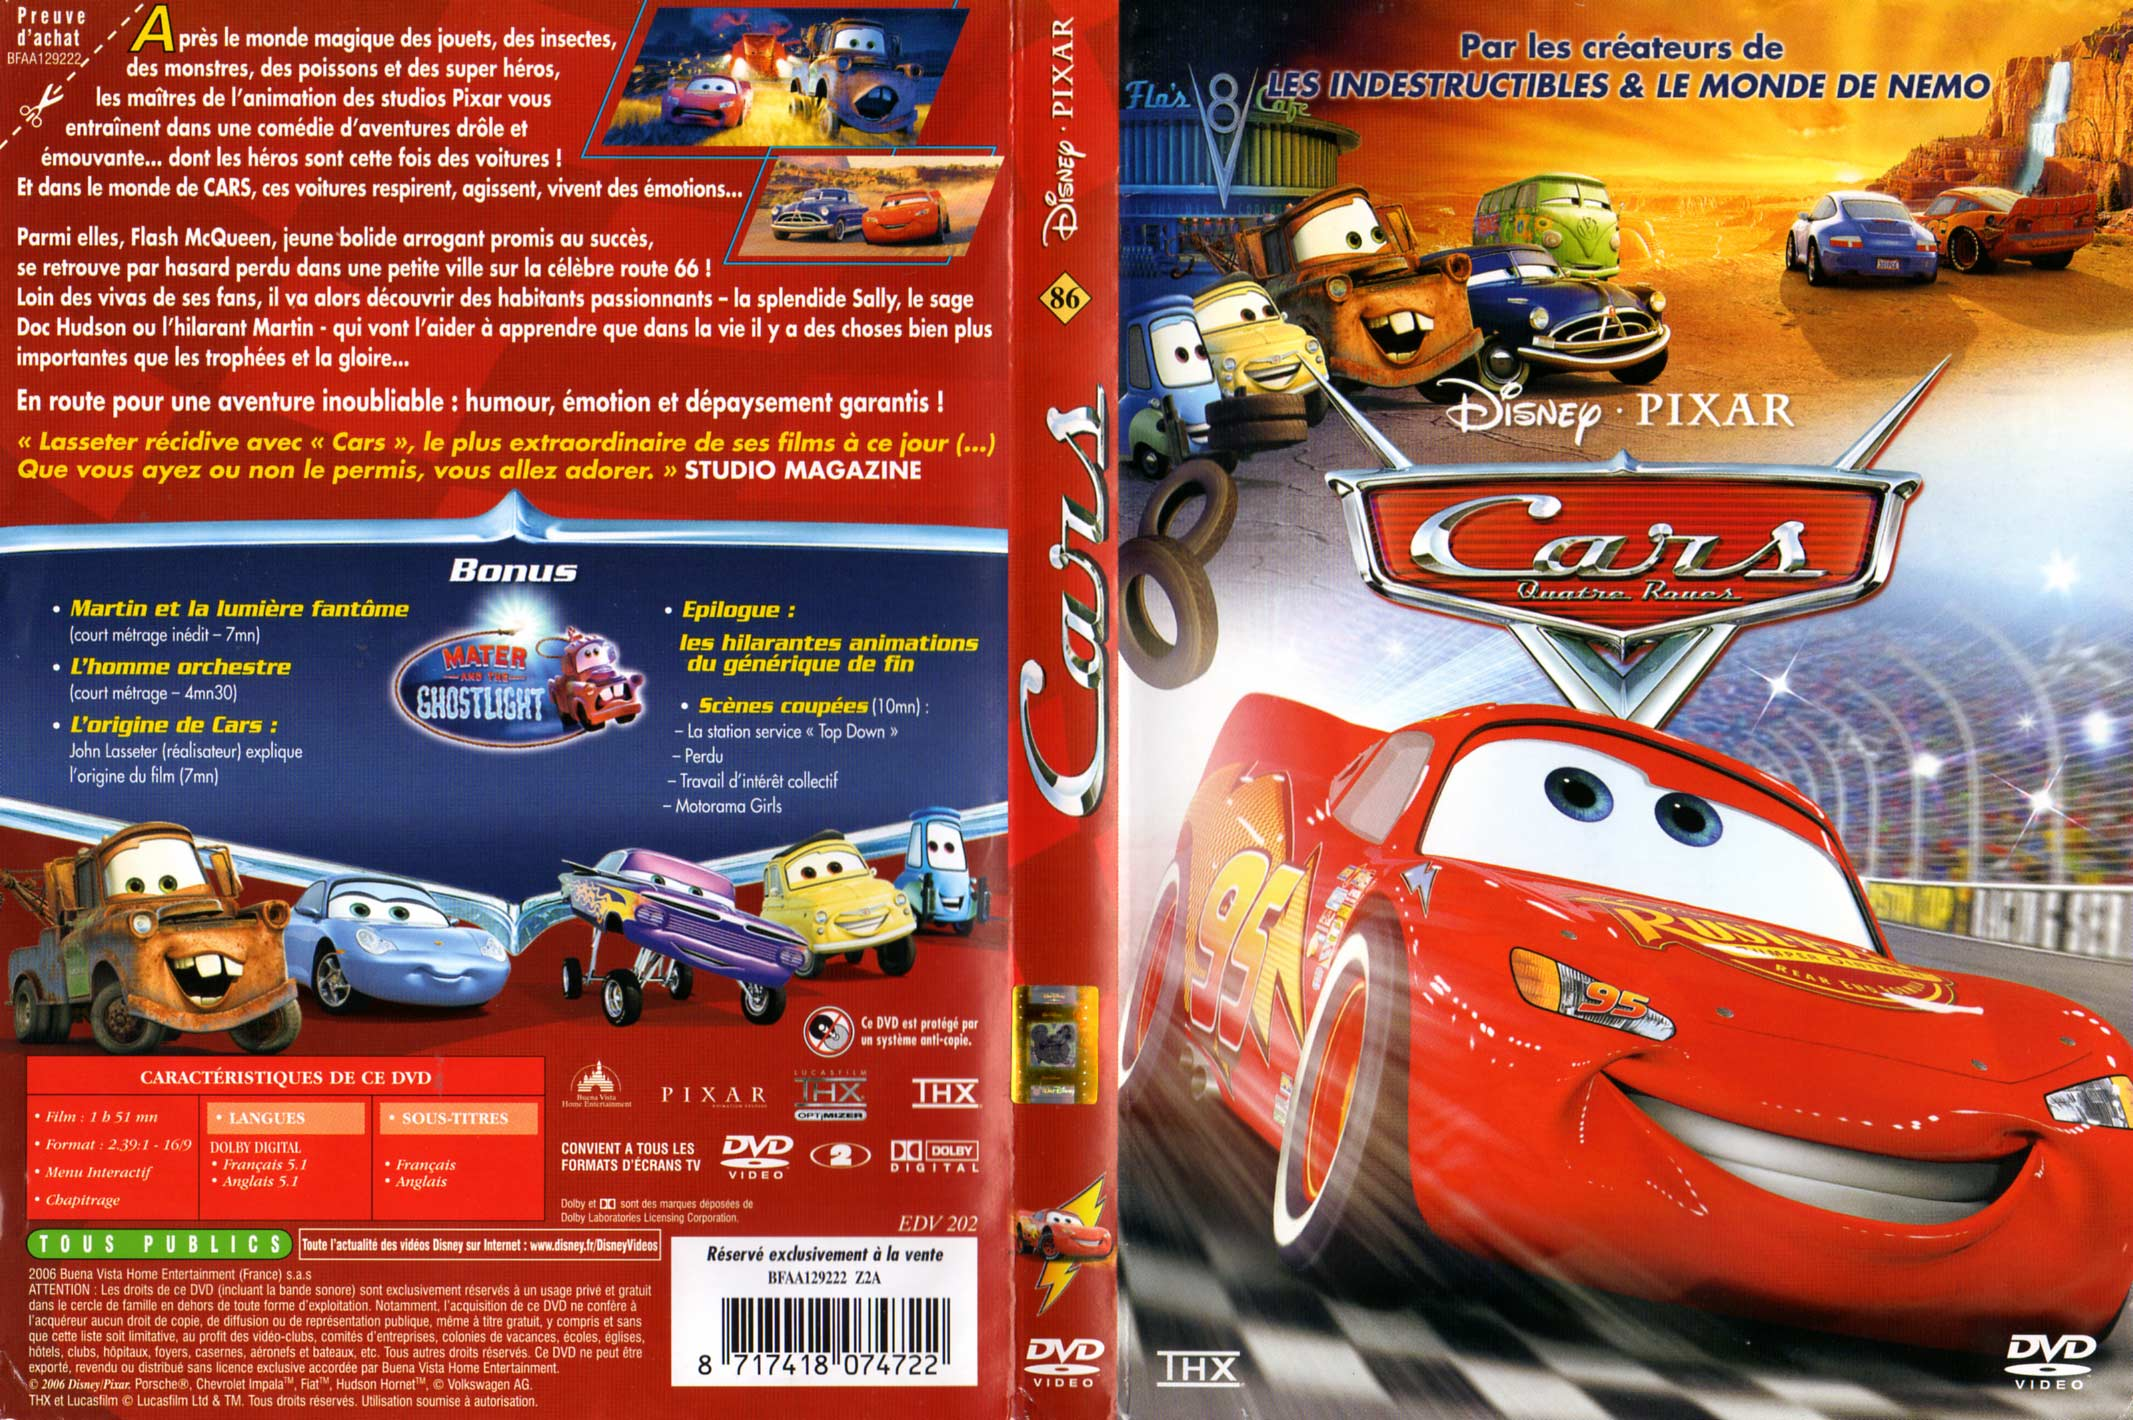 cars 1 pixar 2006. Black Bedroom Furniture Sets. Home Design Ideas